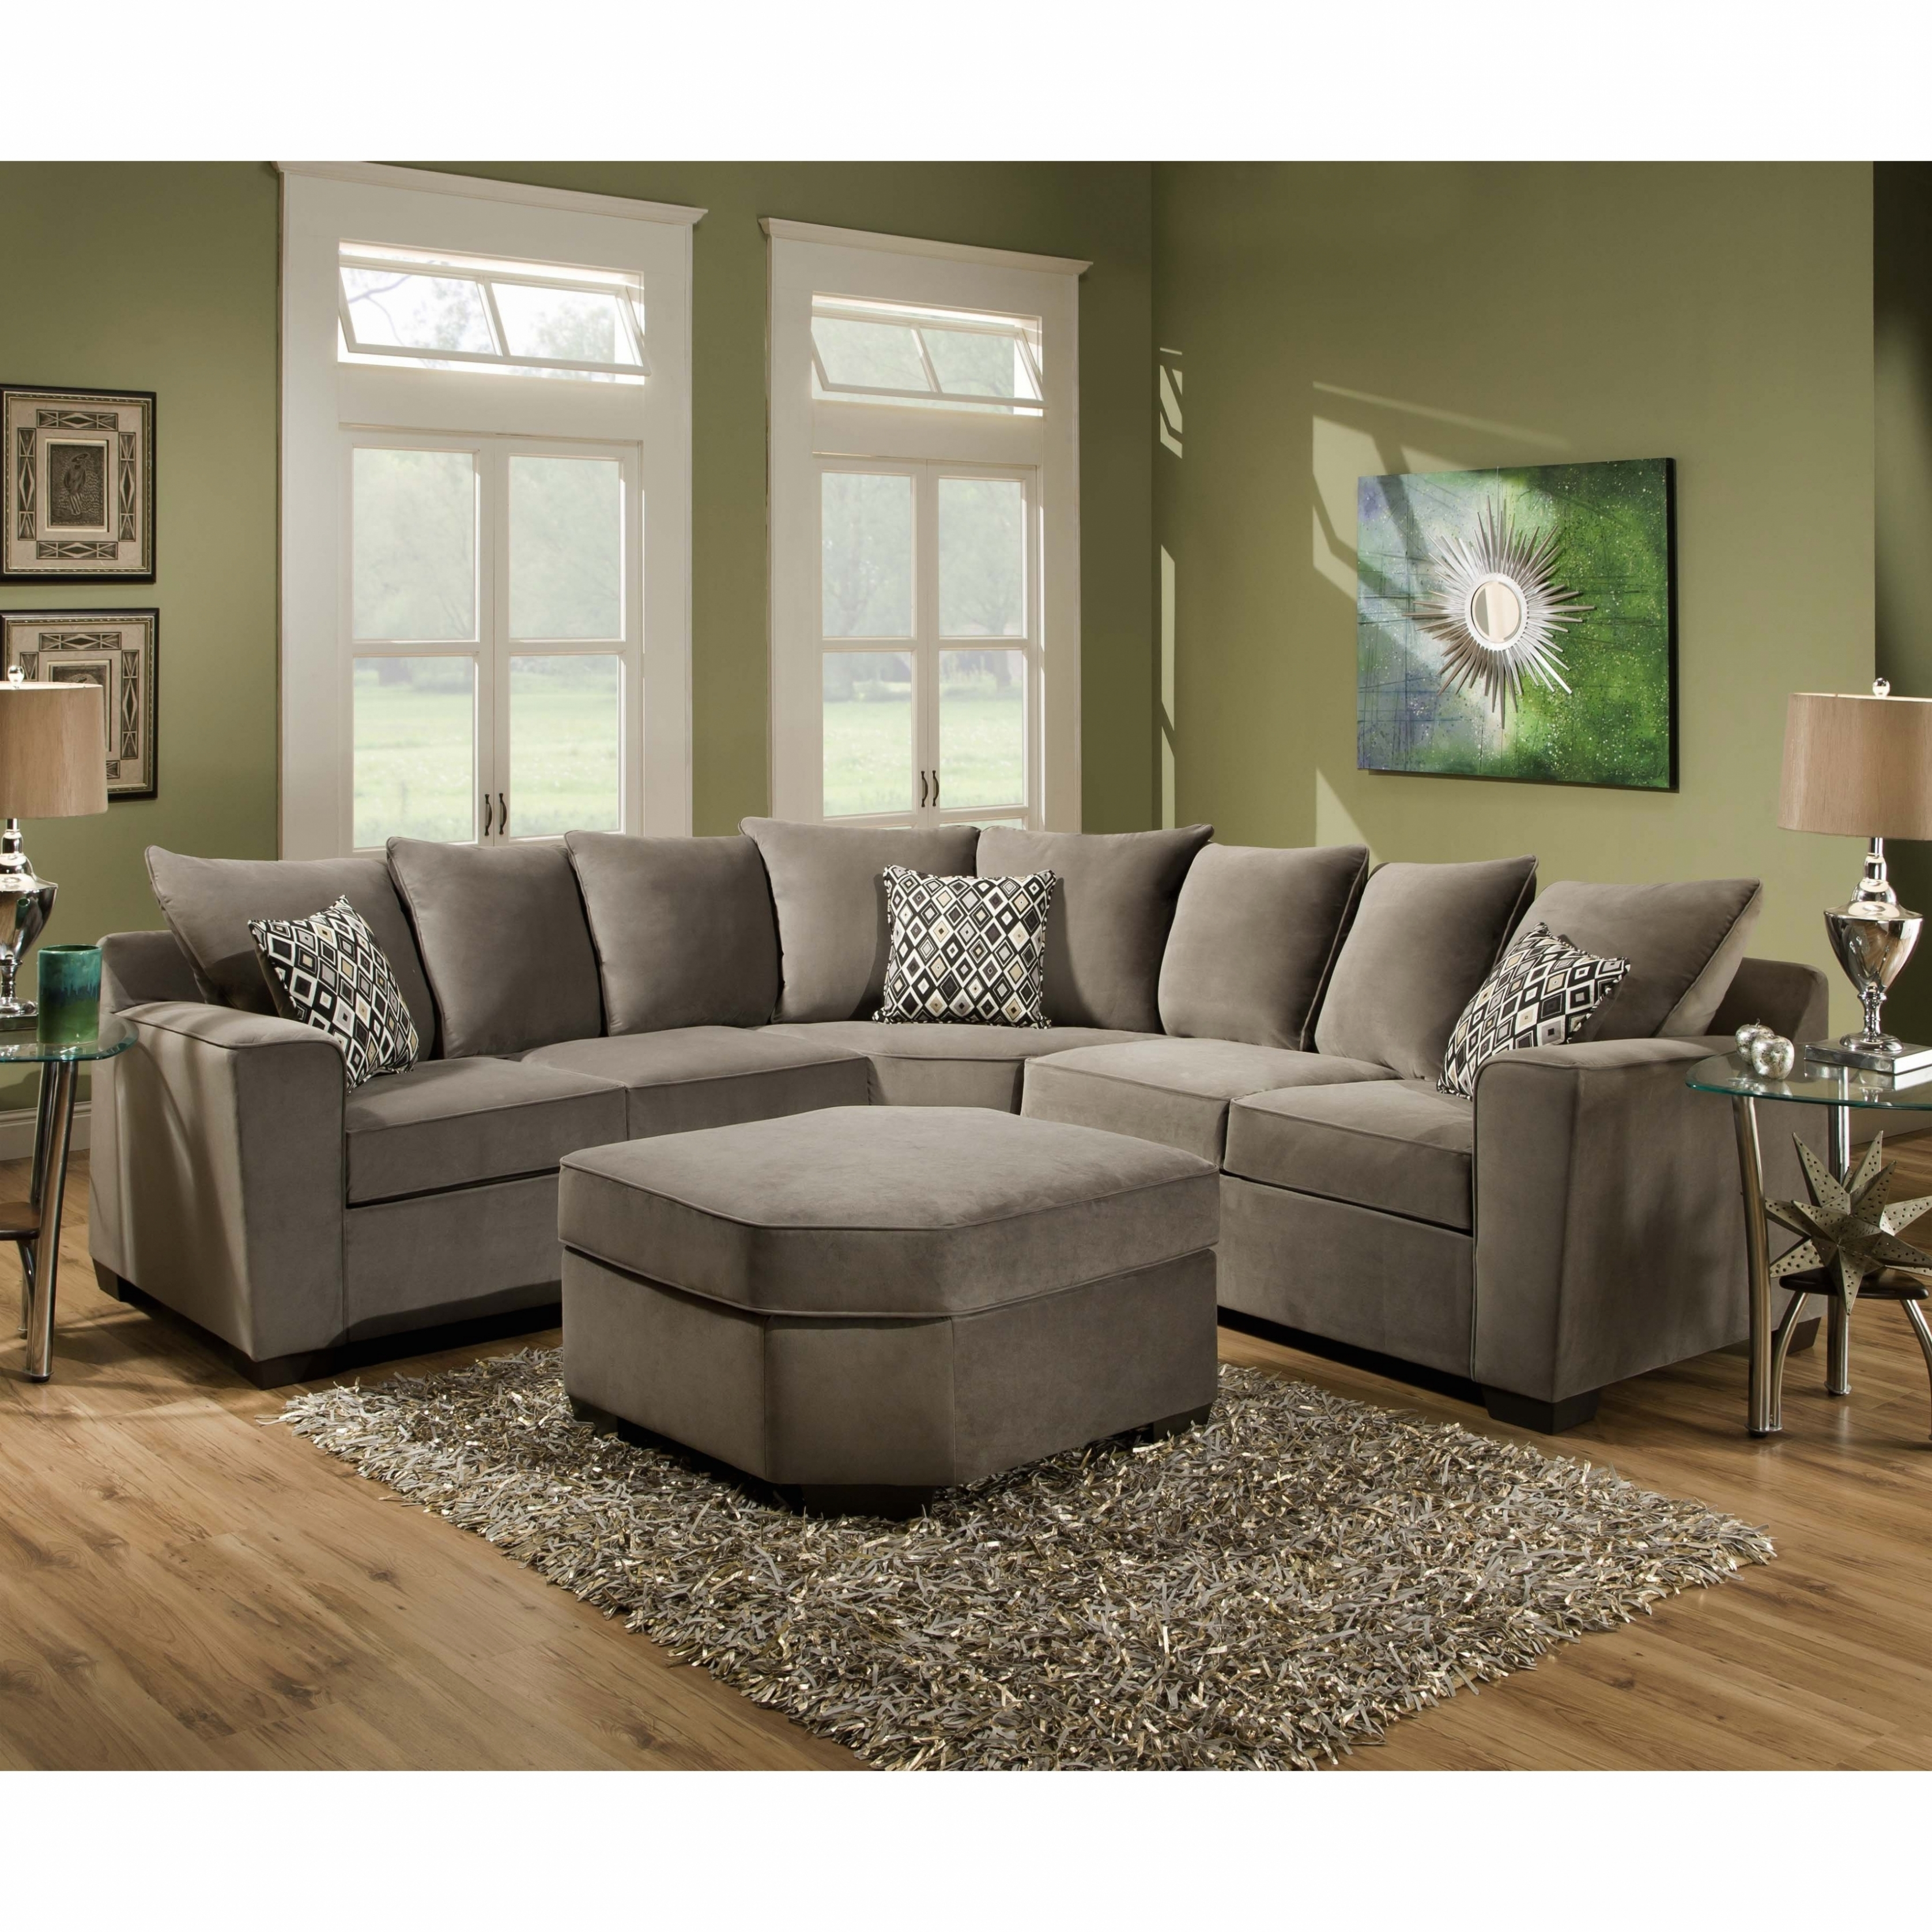 Favorite Havertys Sectional Sofas With Regard To Sofa: Havertys Sectional Sofas Nrhcares Within Lovely Havertys (View 7 of 15)